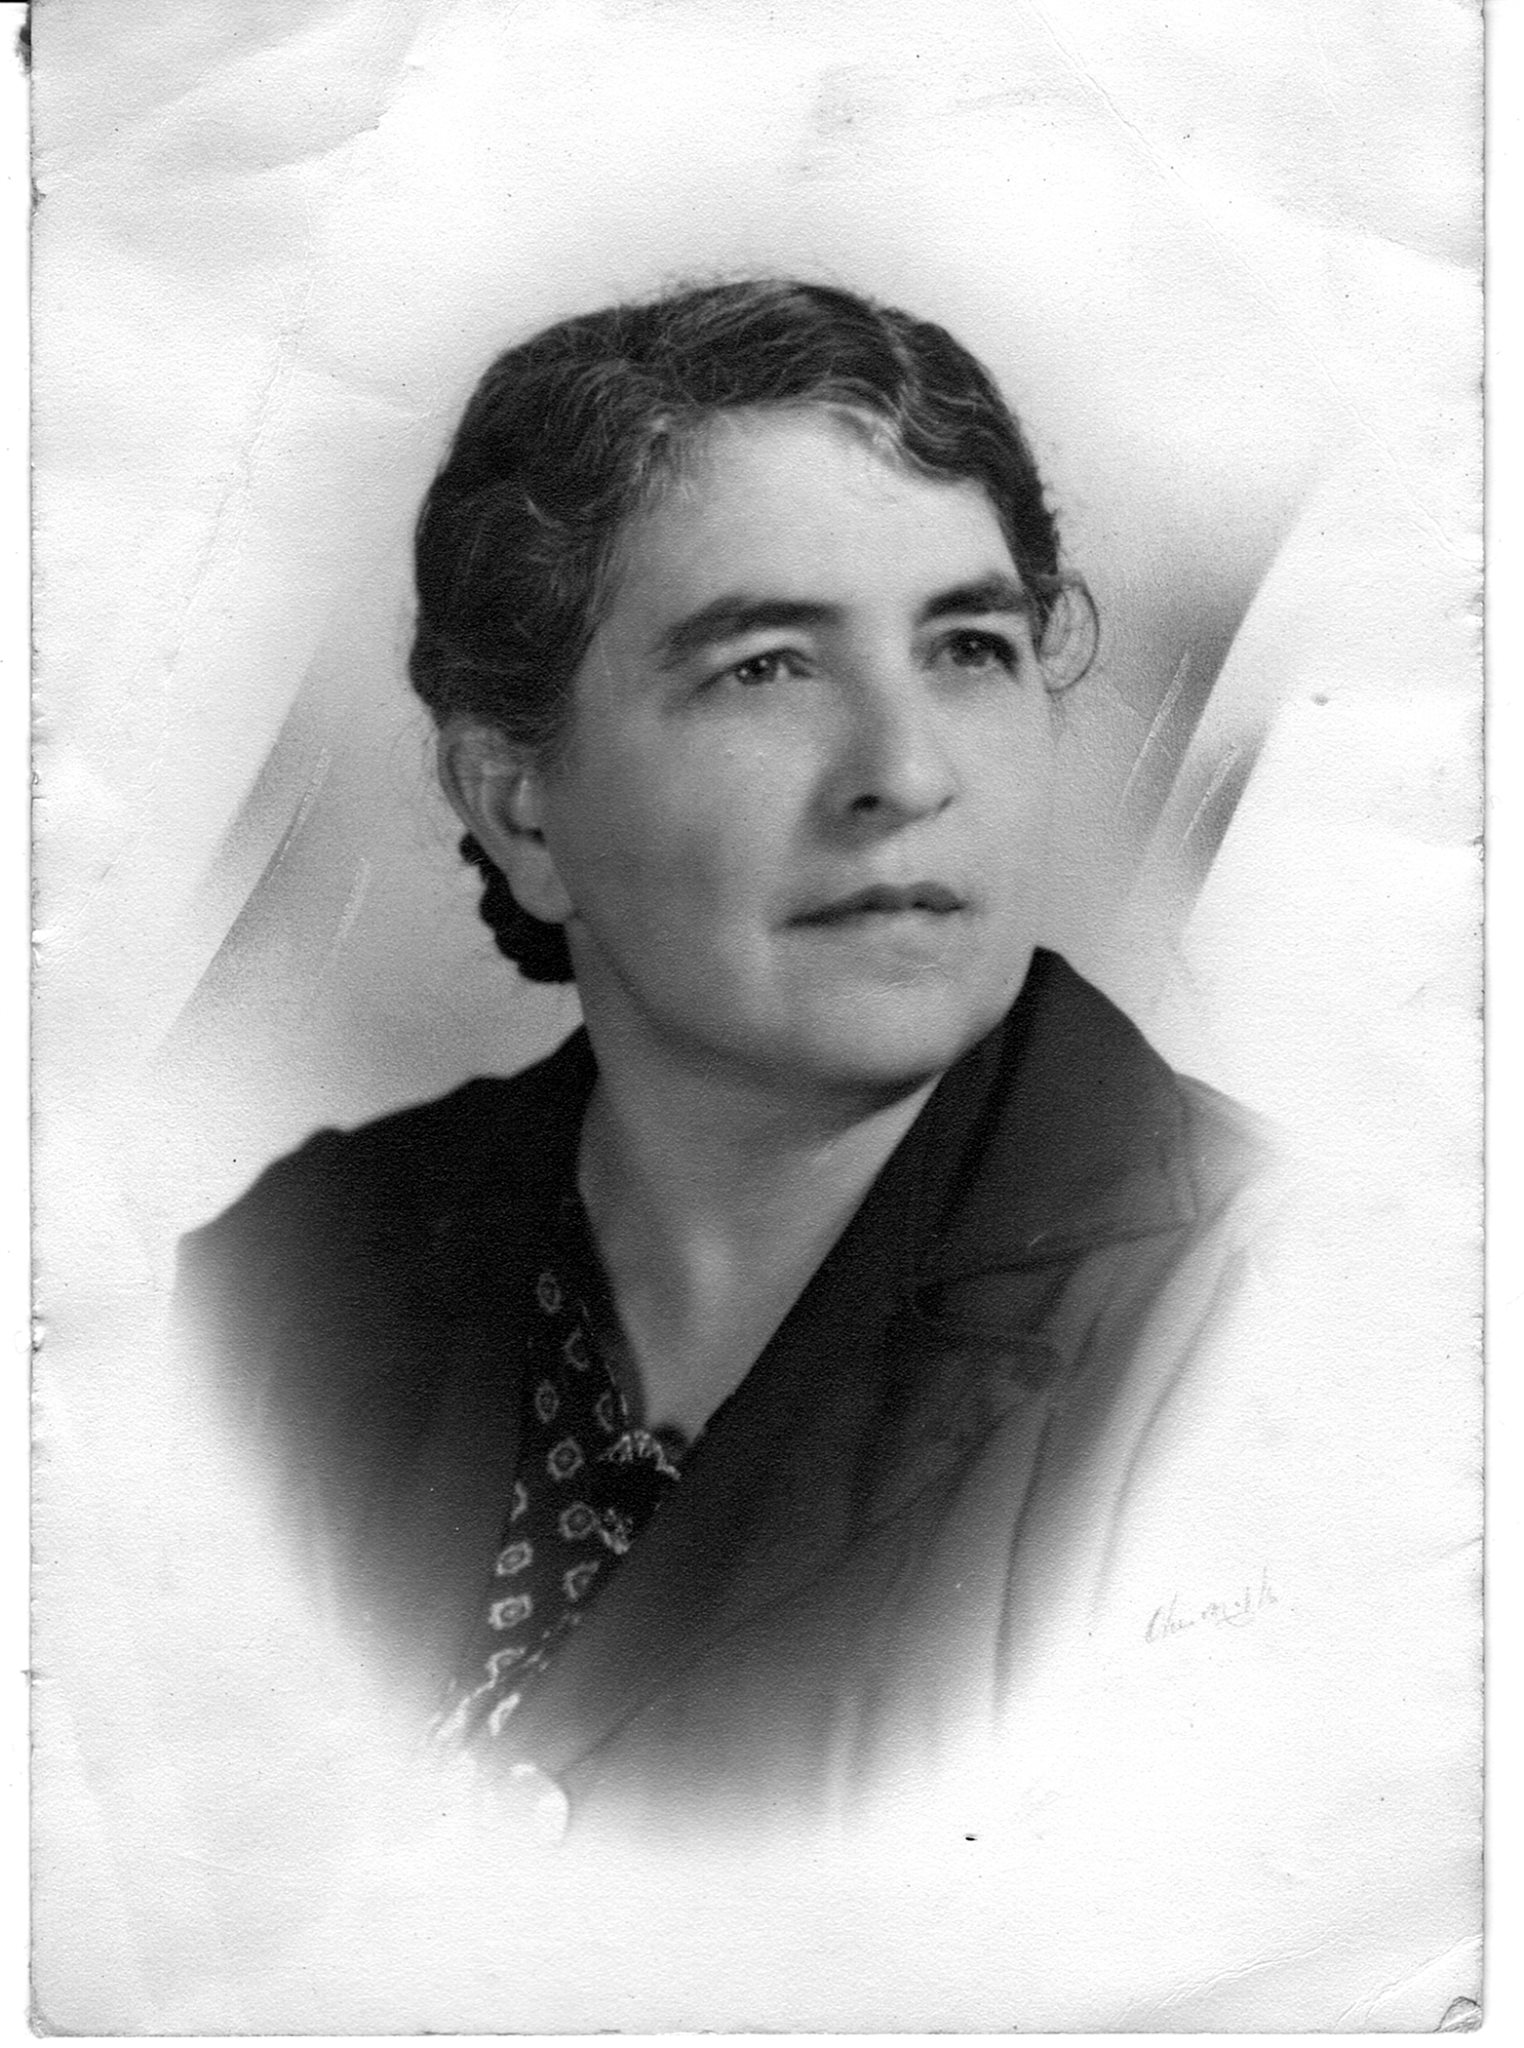 Grandma Angelina Pizzillo Michelli (1902-1975)